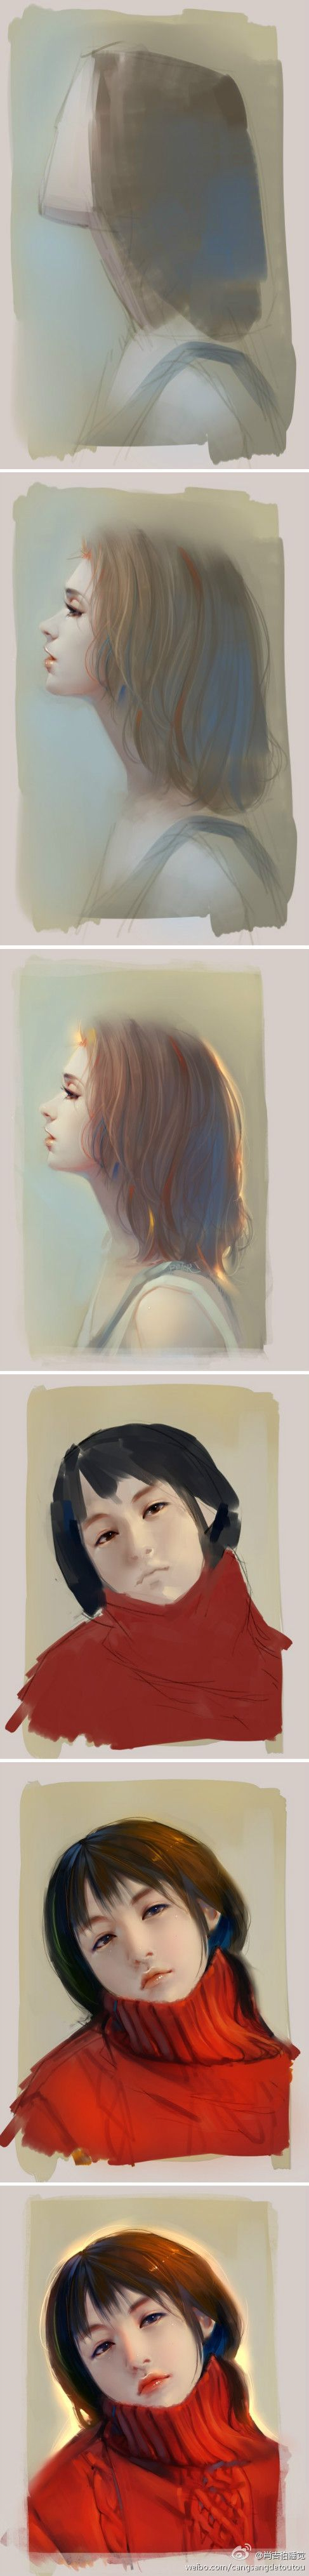 Two tutorials of how to draw female's face